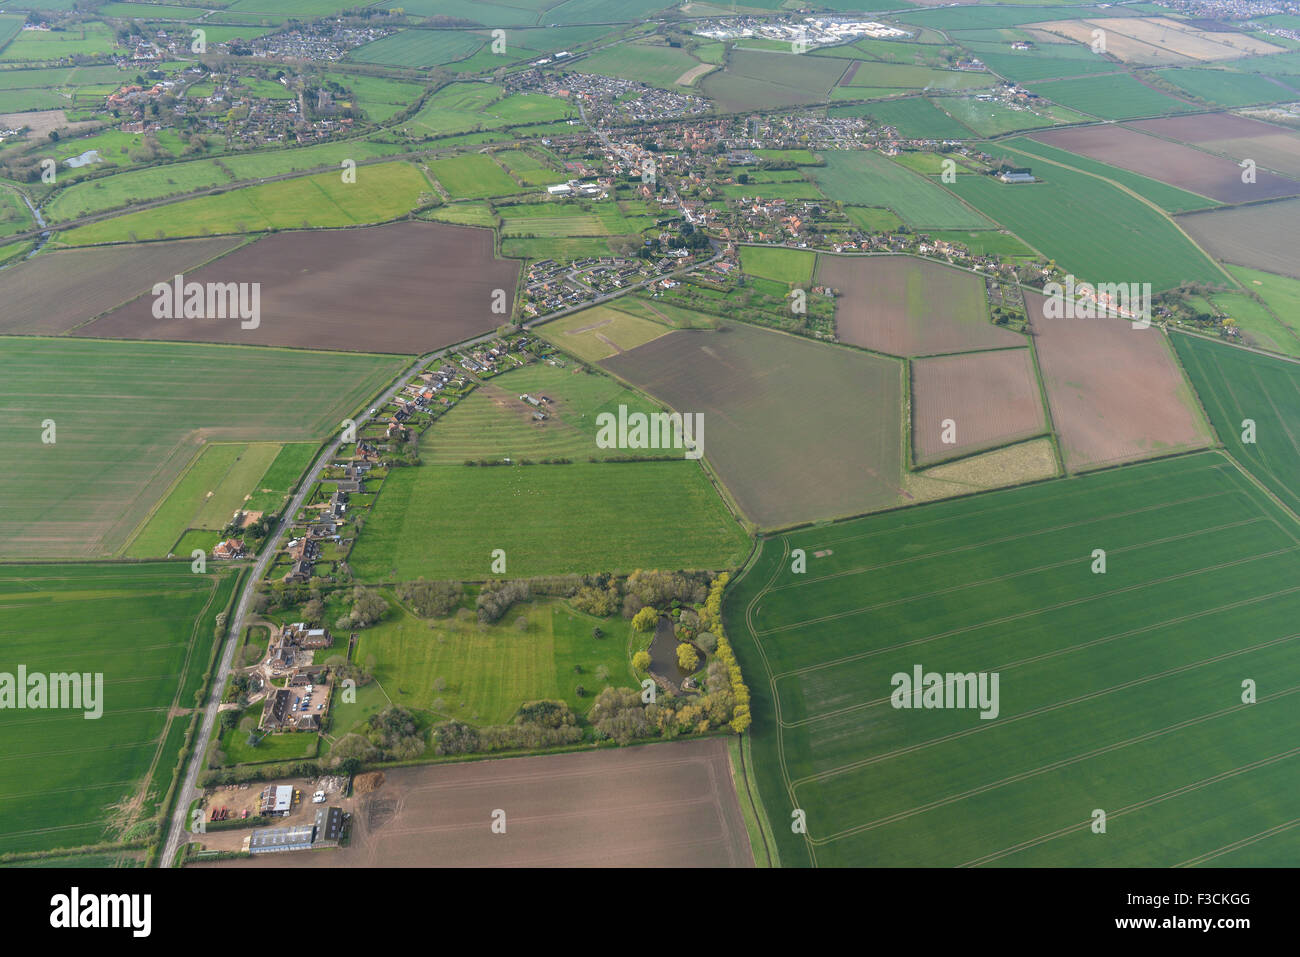 Aerial photograph of Aslockton, Nottinghamshire - Stock Image